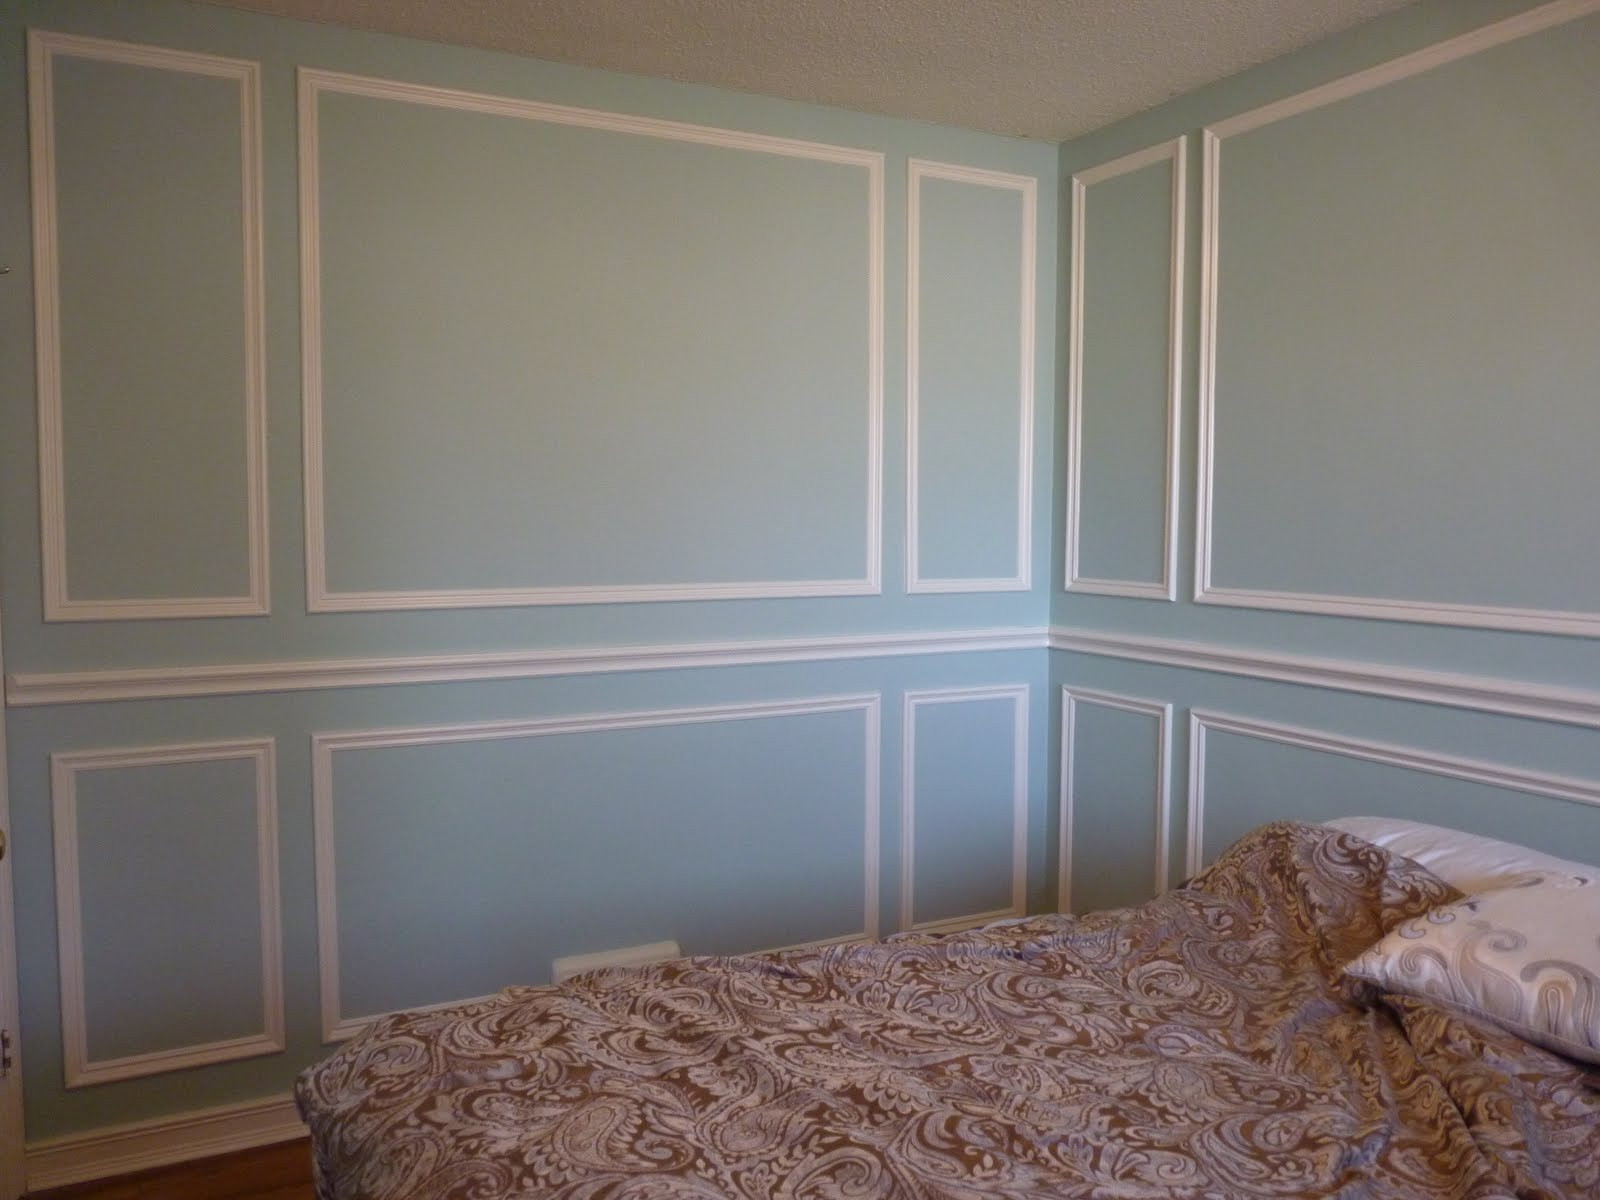 Best ideas about DIY Wall Panels . Save or Pin d i y d e s i g n Installing Molding Panels Now.